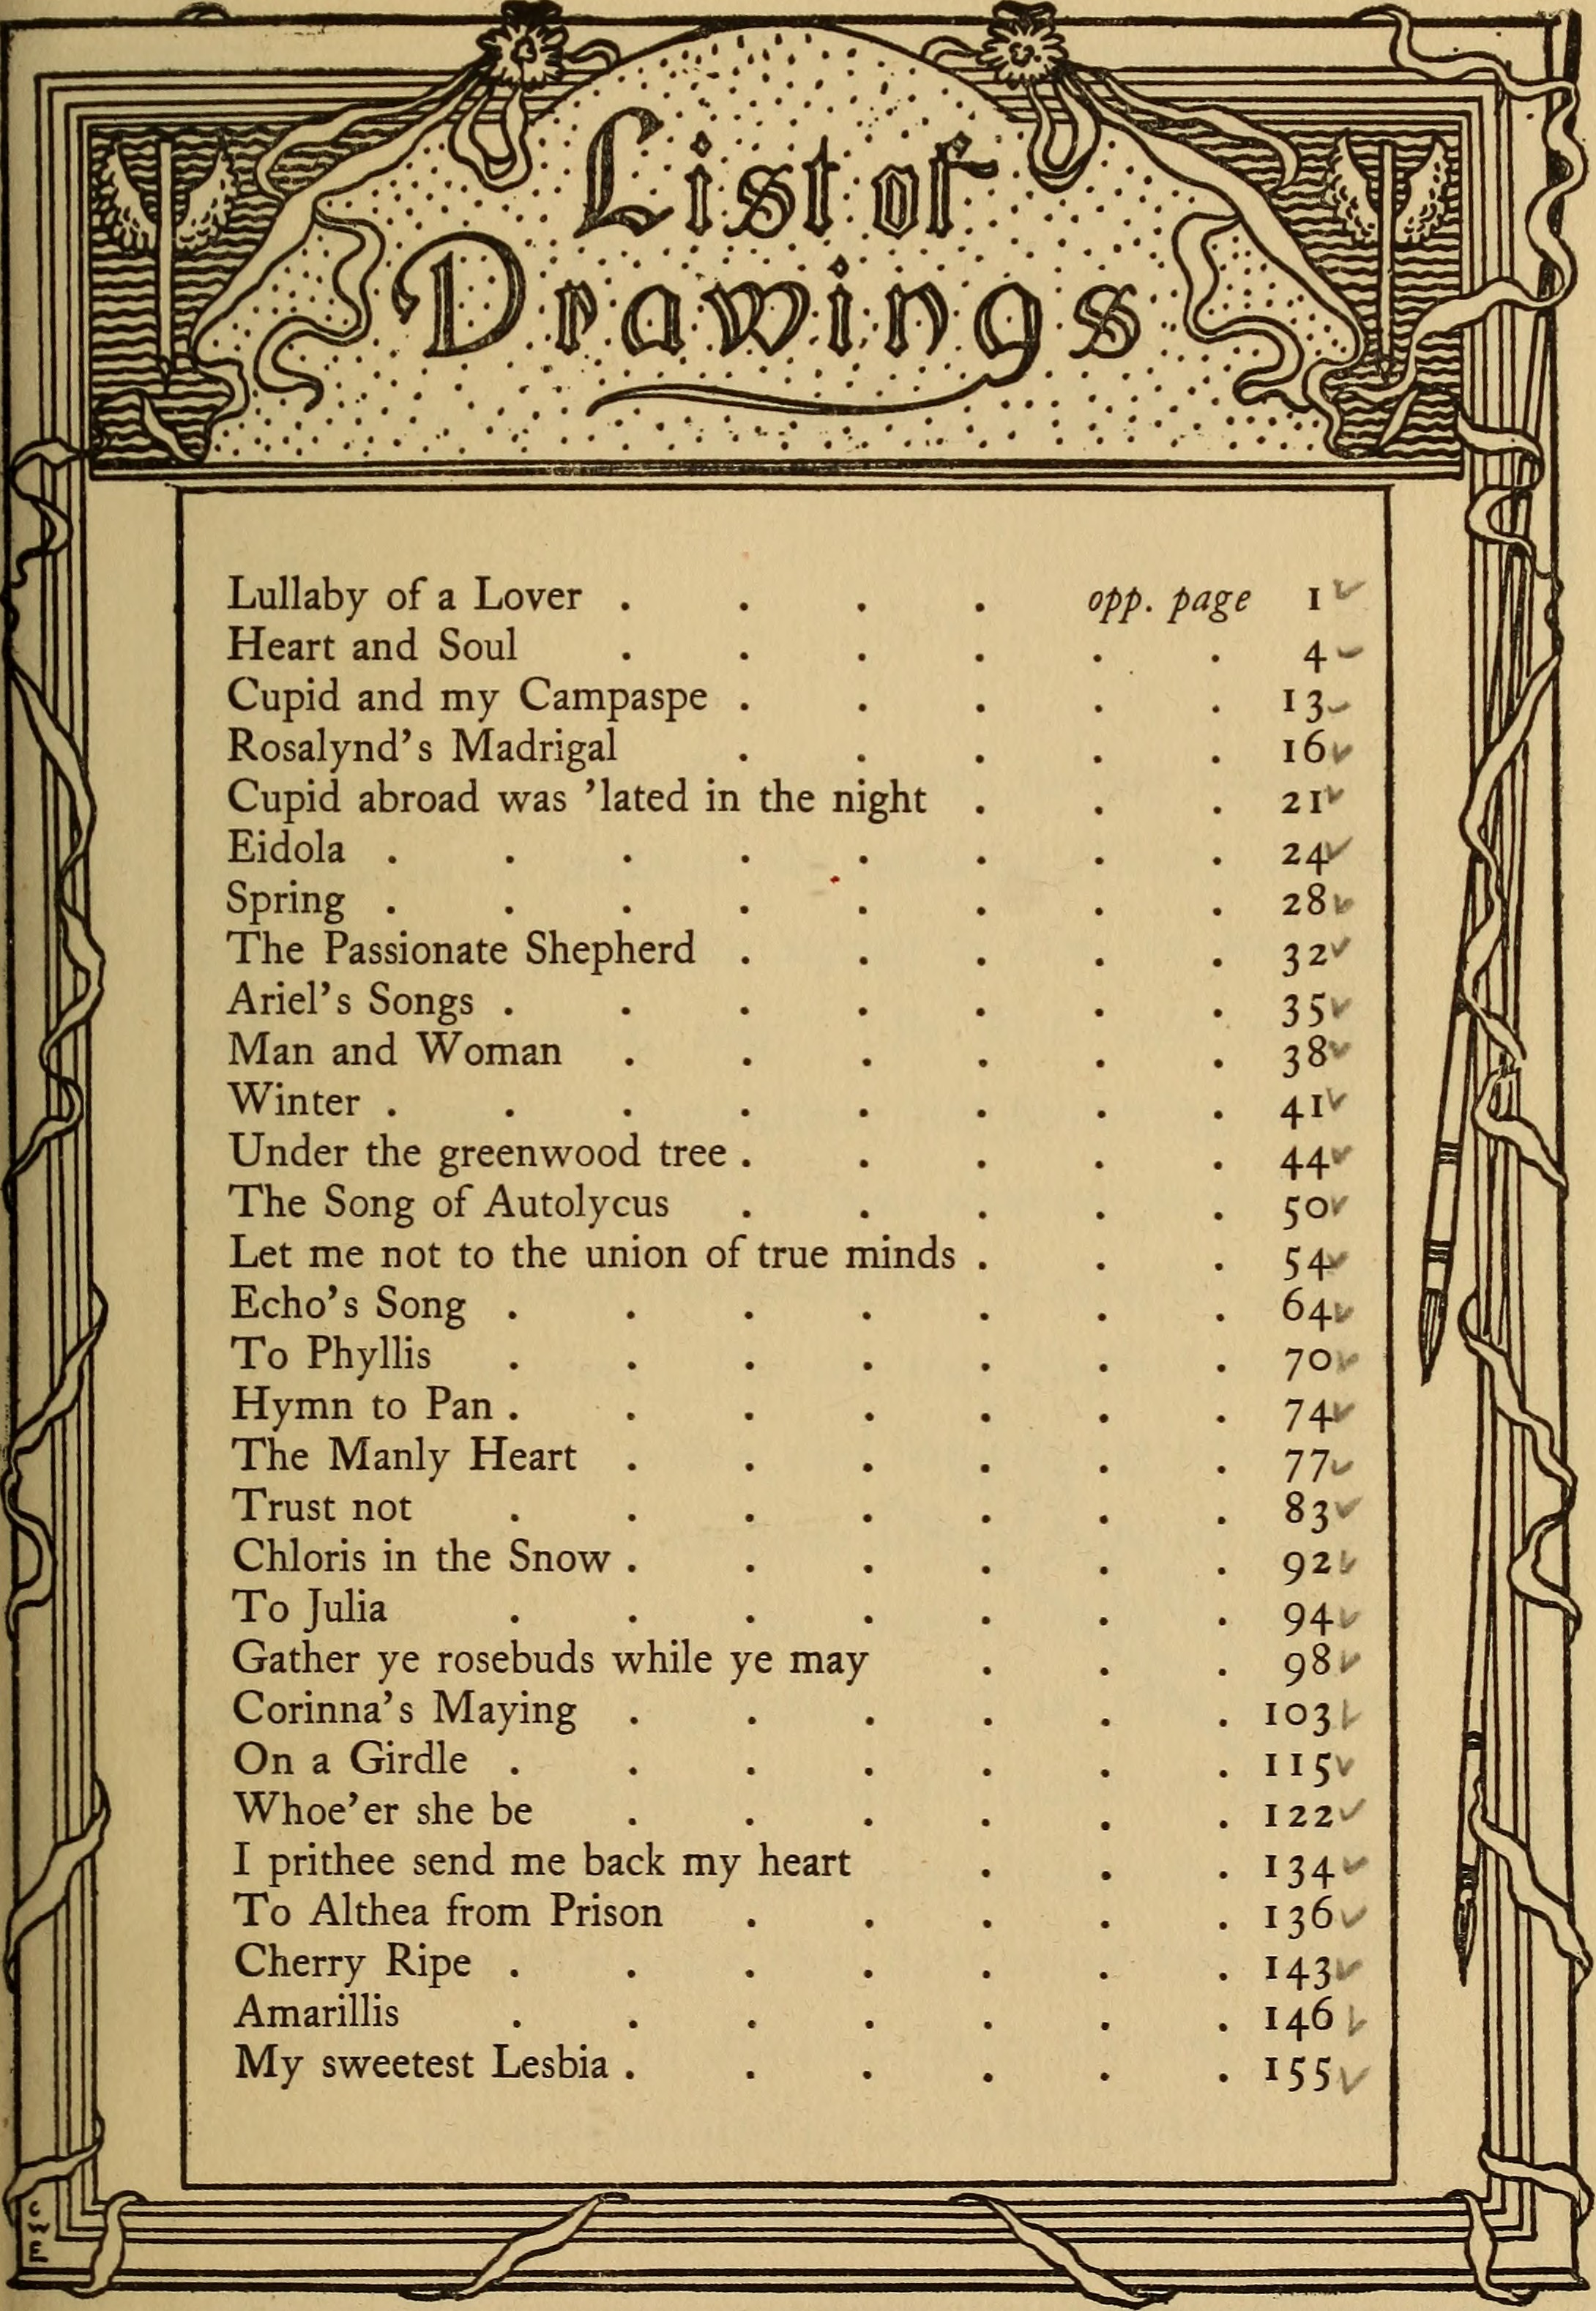 Old english love songs list